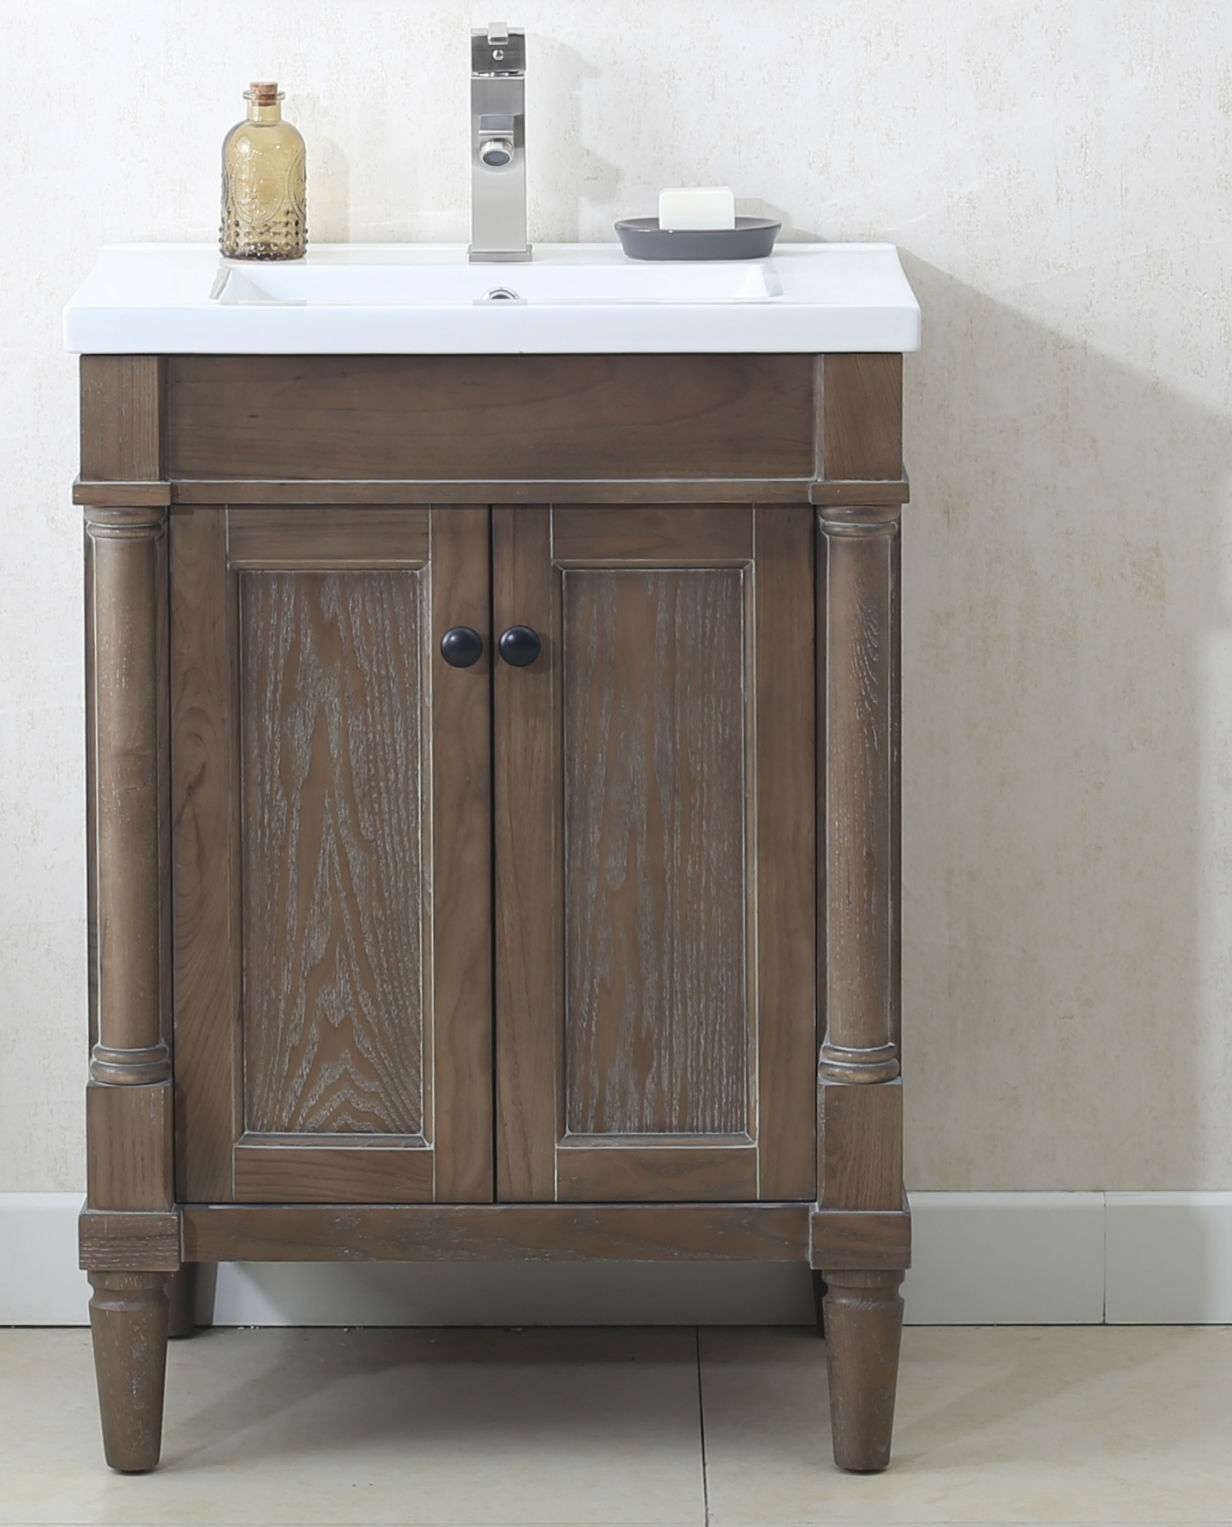 Wlf7021 24 By Legion Furniture Vanities Goedeker S 24 Inch Bathroom Vanity Bathroom Vanity Single Bathroom Vanity